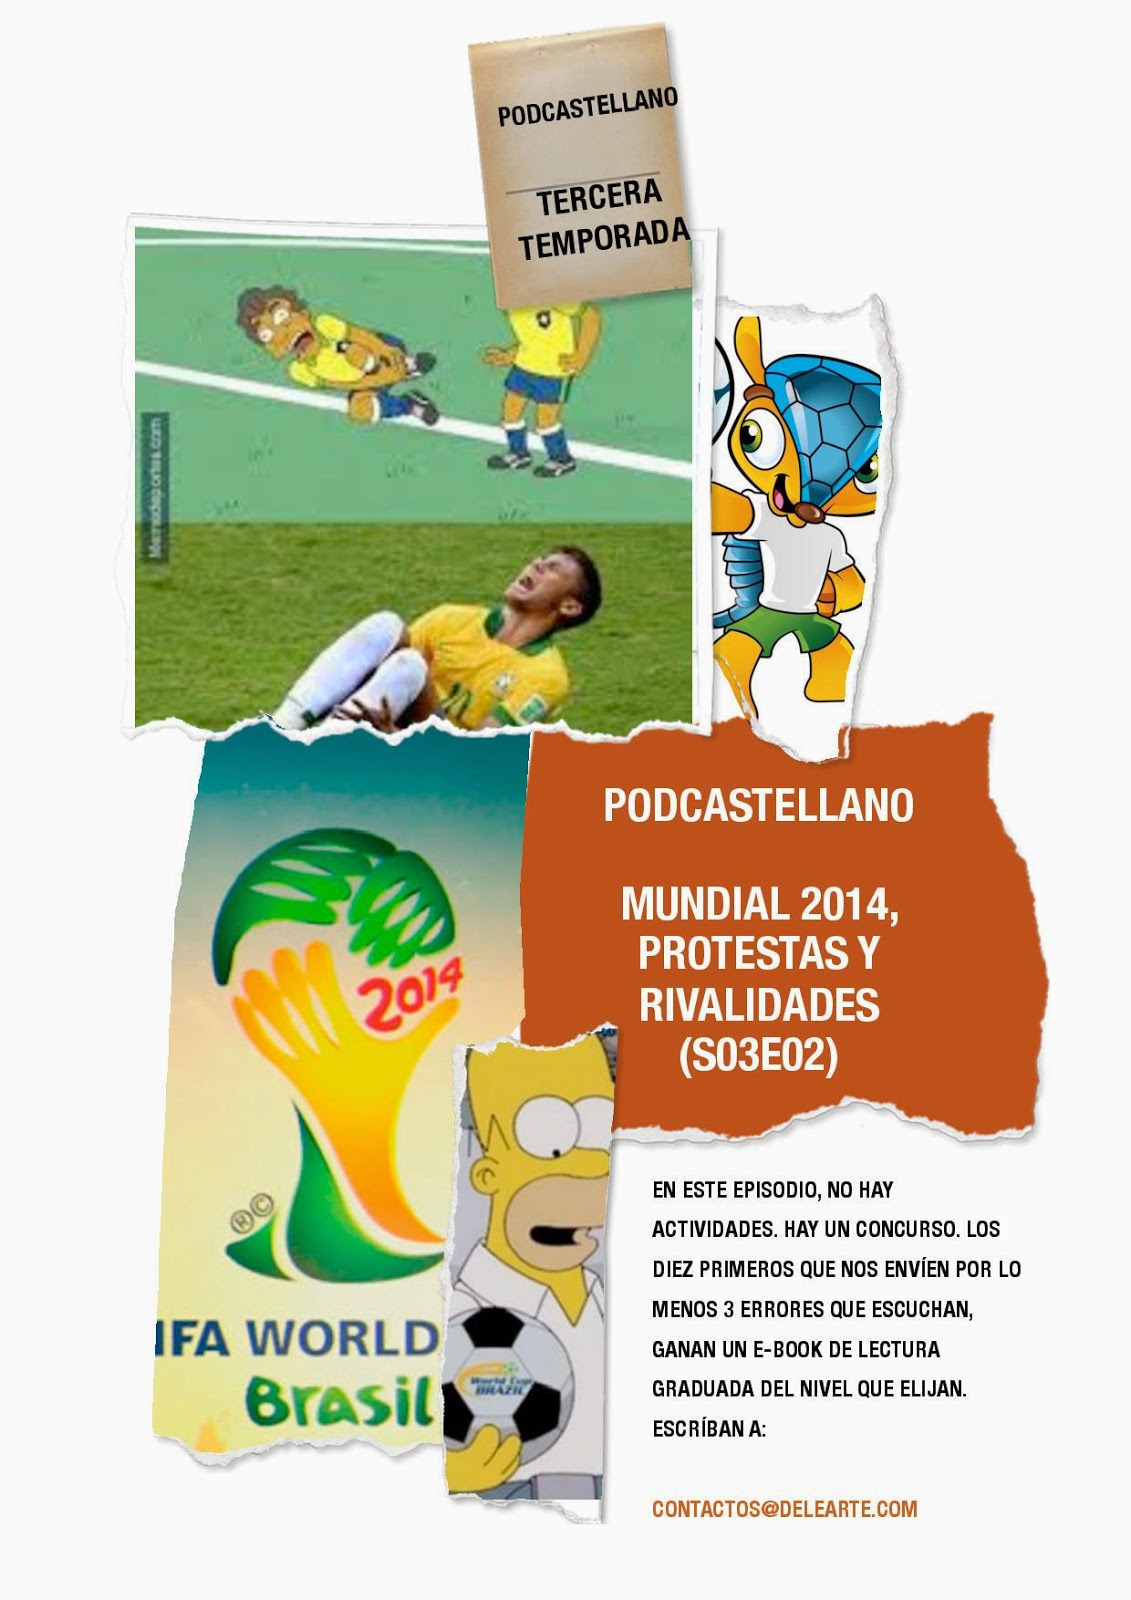 Podcastellano-+Mundial+2014,+protestas+y